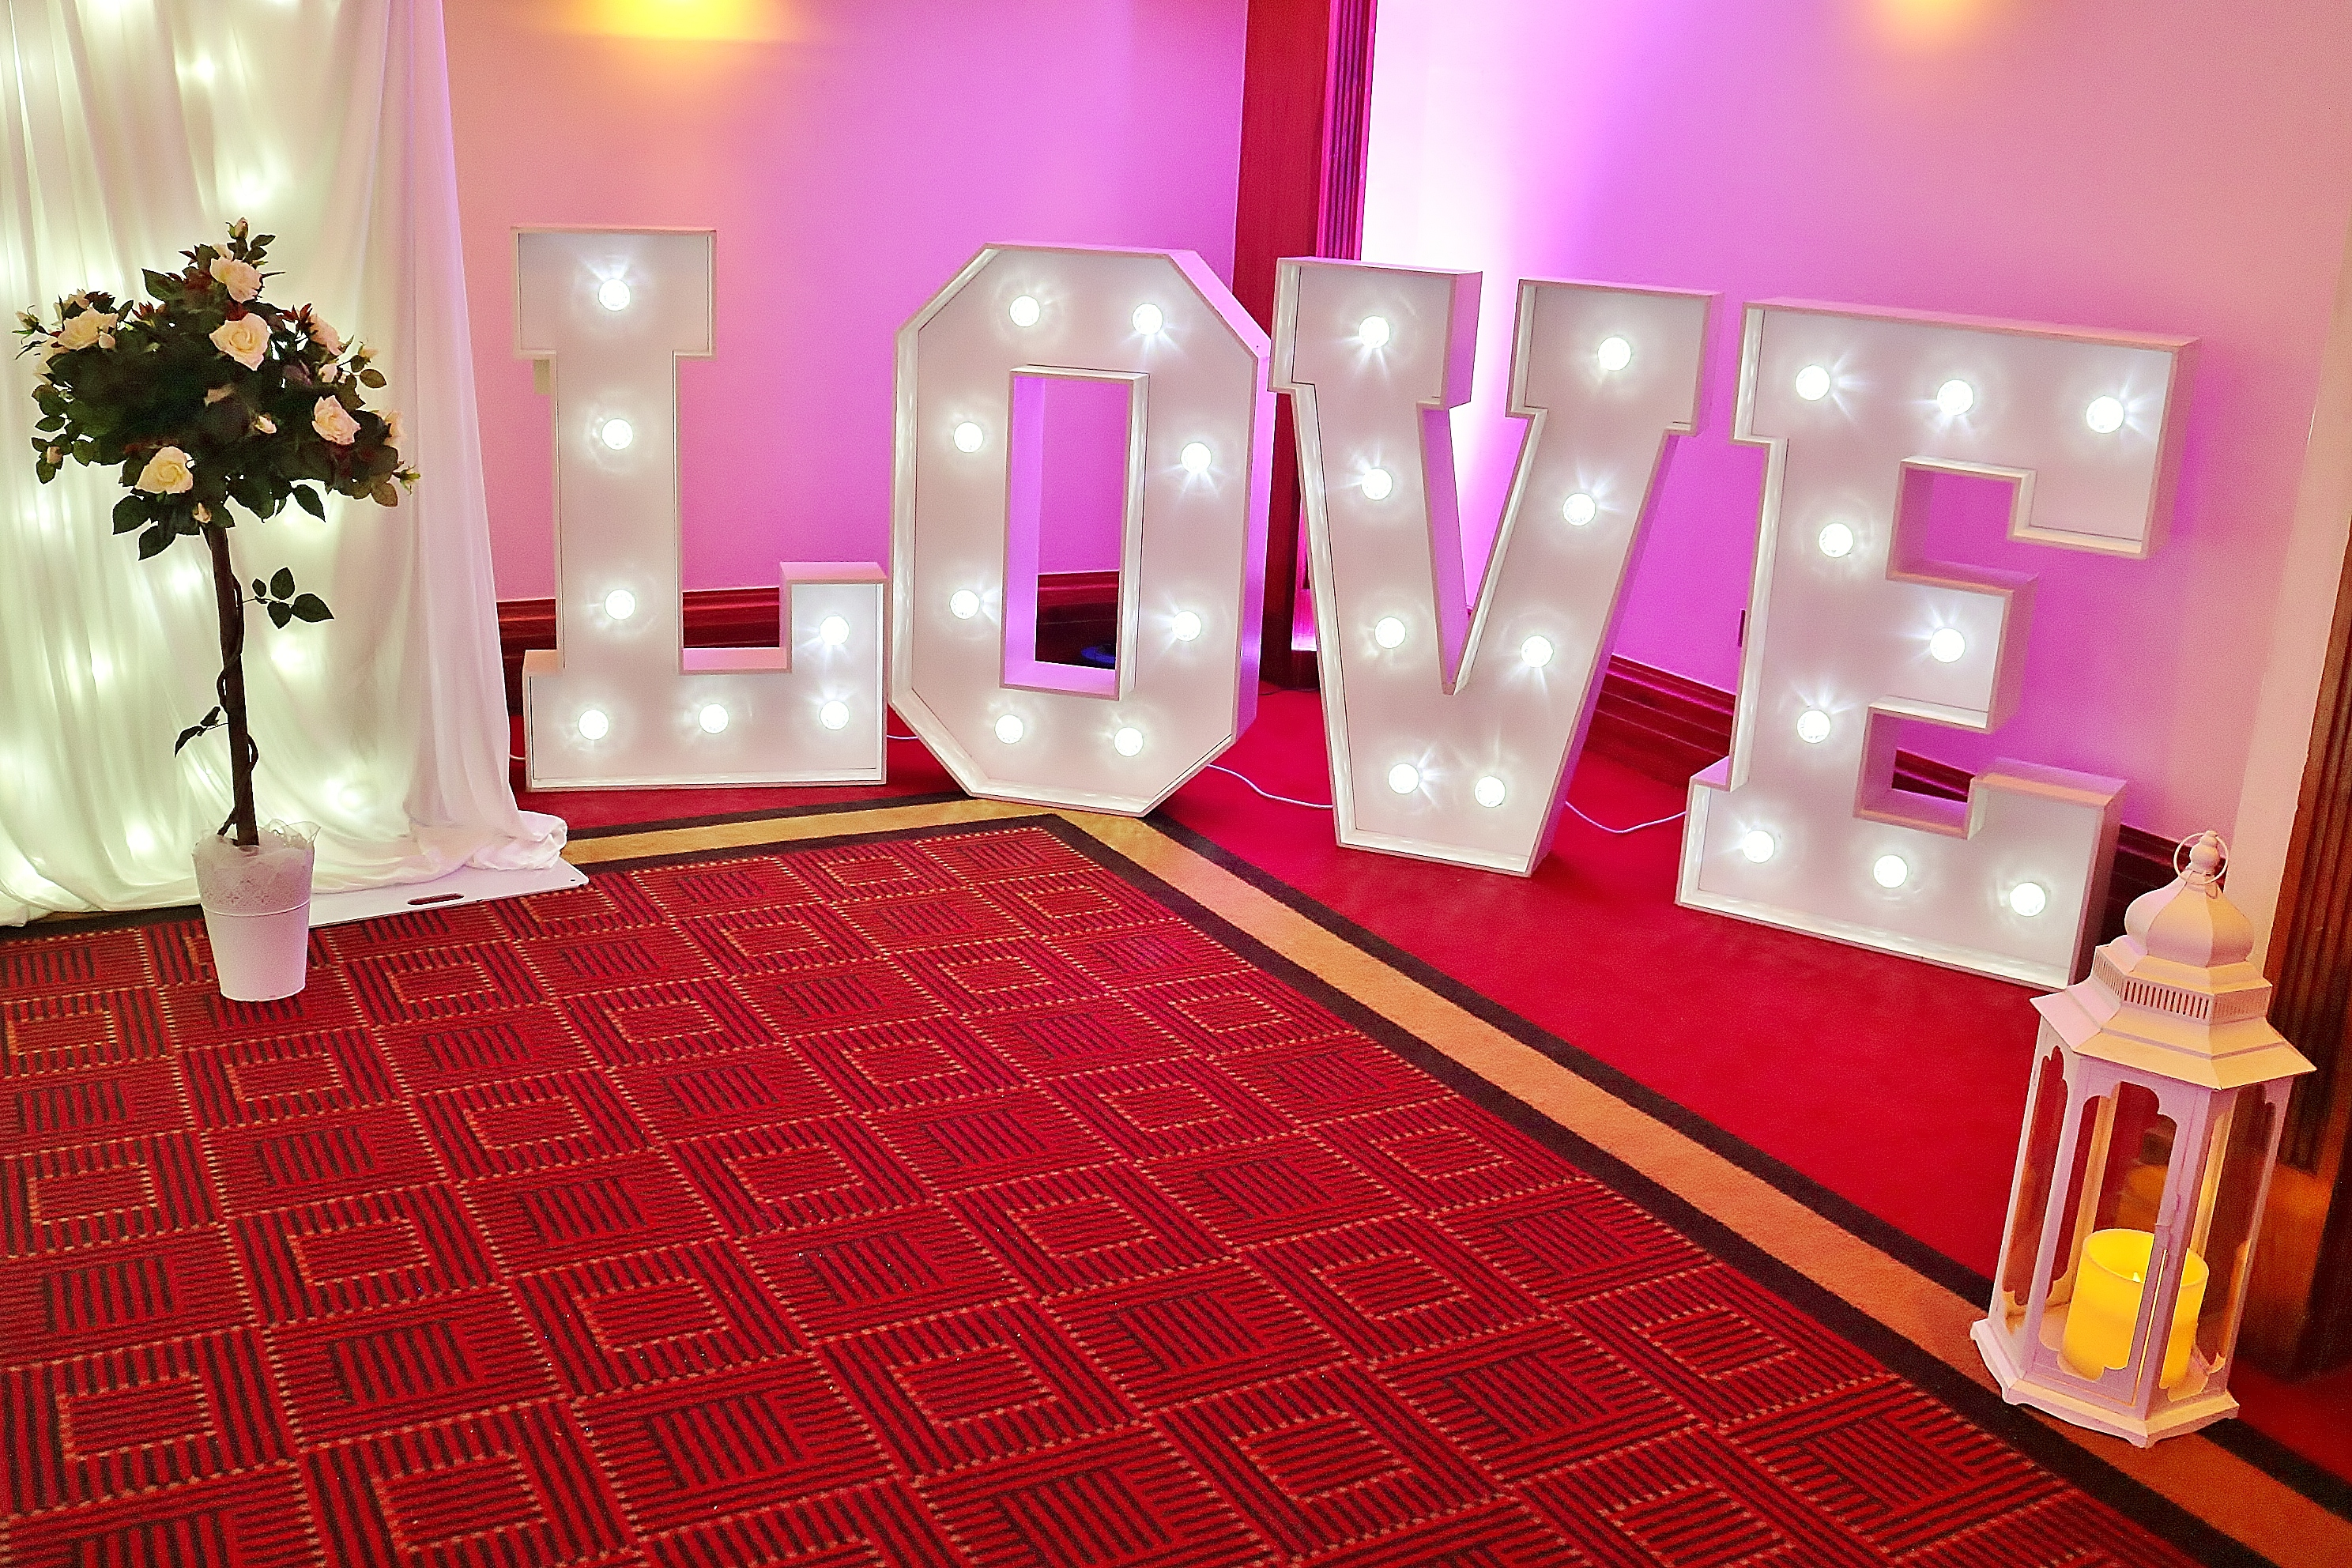 Illuminated 'Love' letters